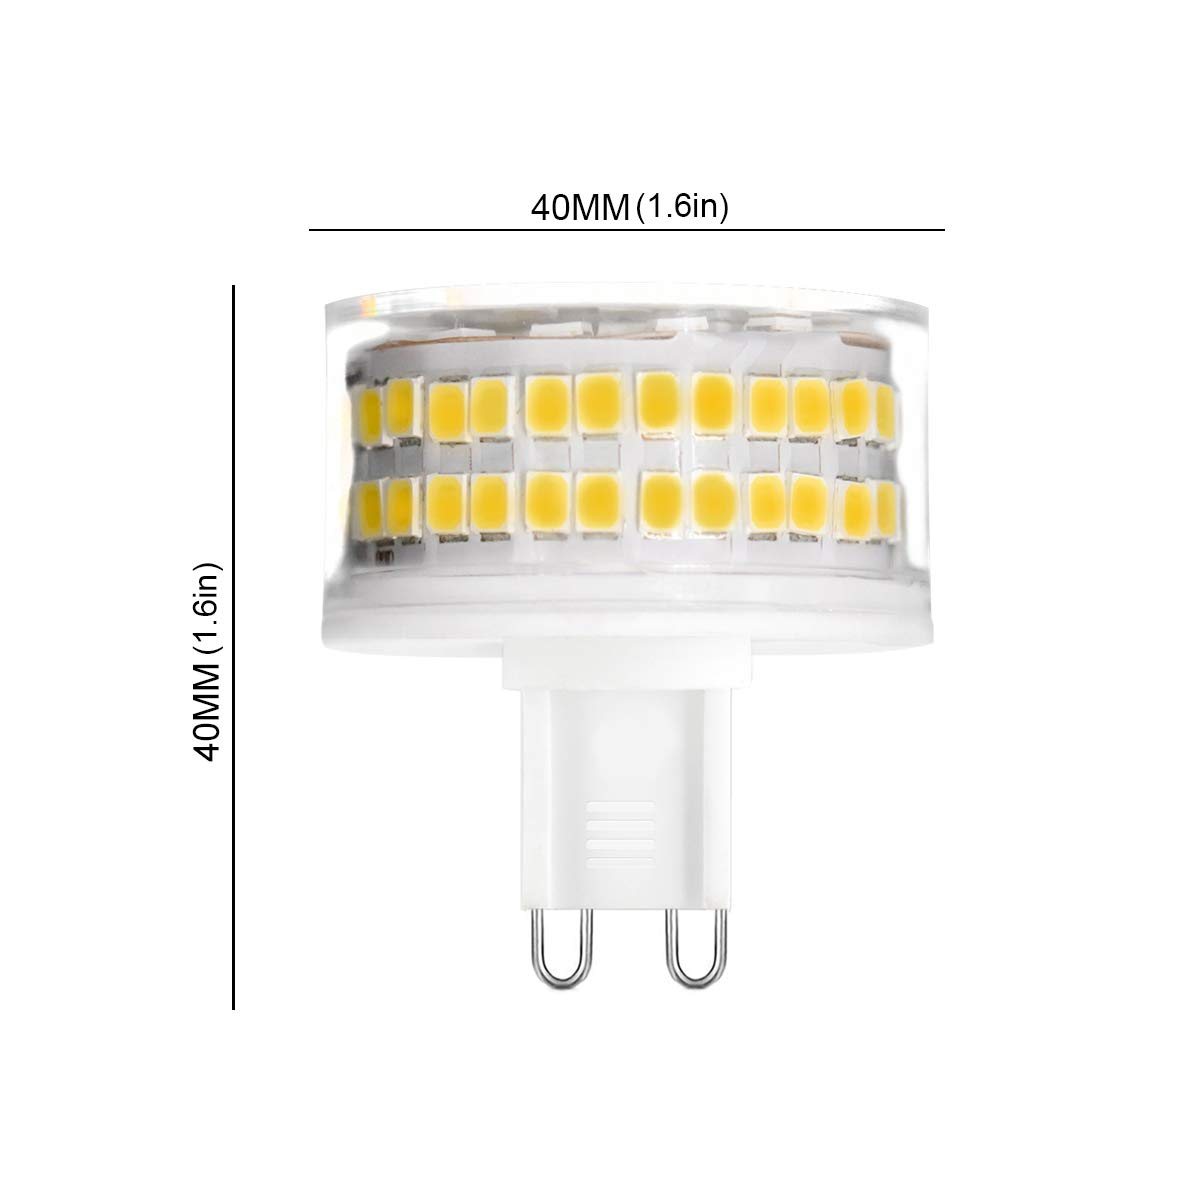 9W Equivalent to 90W Halogen Bulbs,900LM,6000K Cool White 6-Pack G9 9W LED Light Bulbs Cool White 360/° Beam Angle AC220-240V G9 Energy Saving Light Bulbs No Flicker Dimmable